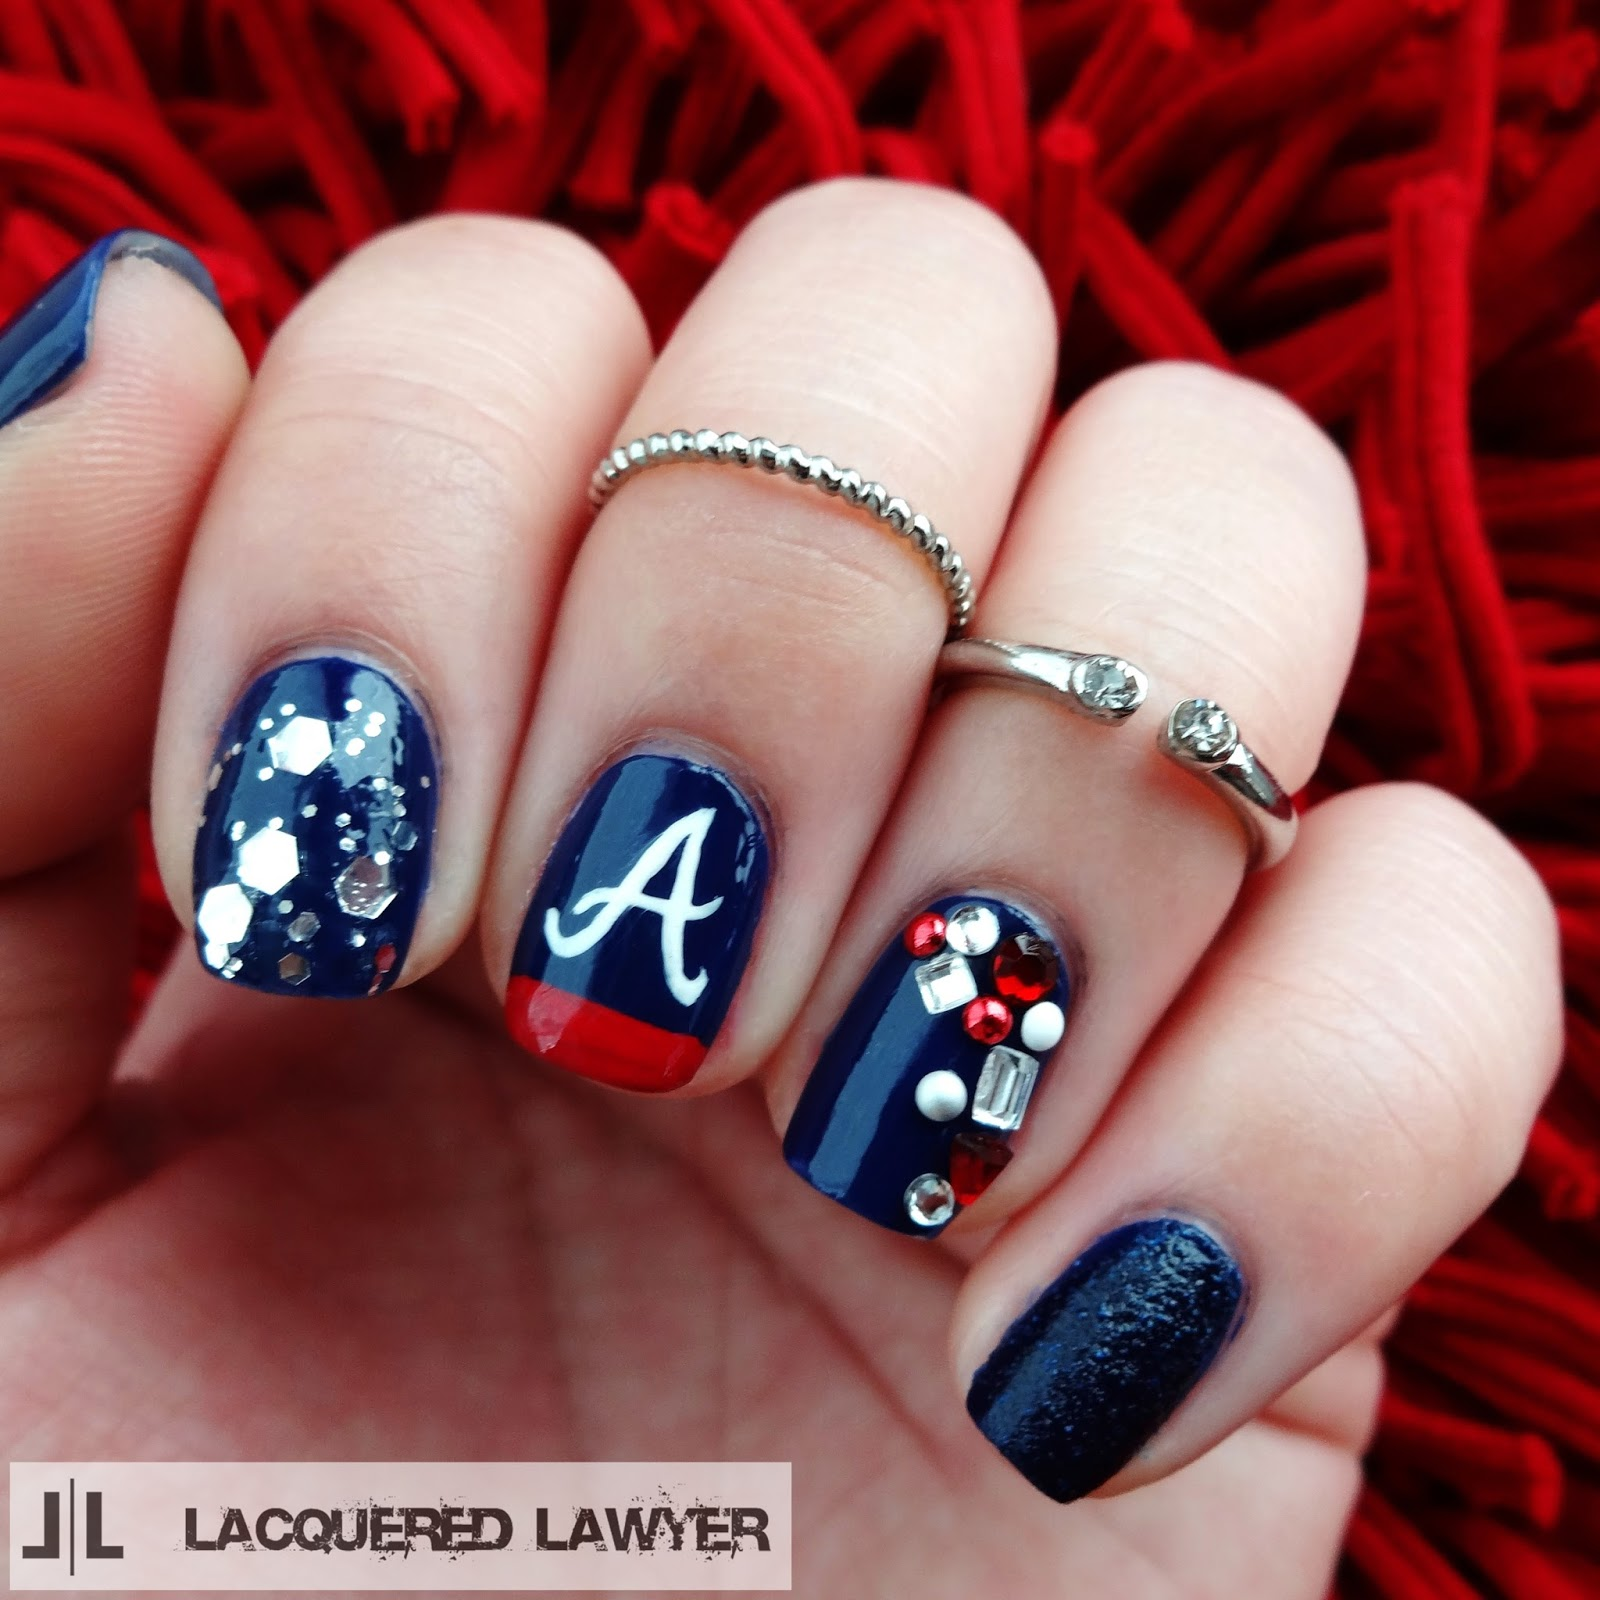 Lacquered Lawyer | Nail Art Blog: March 2015